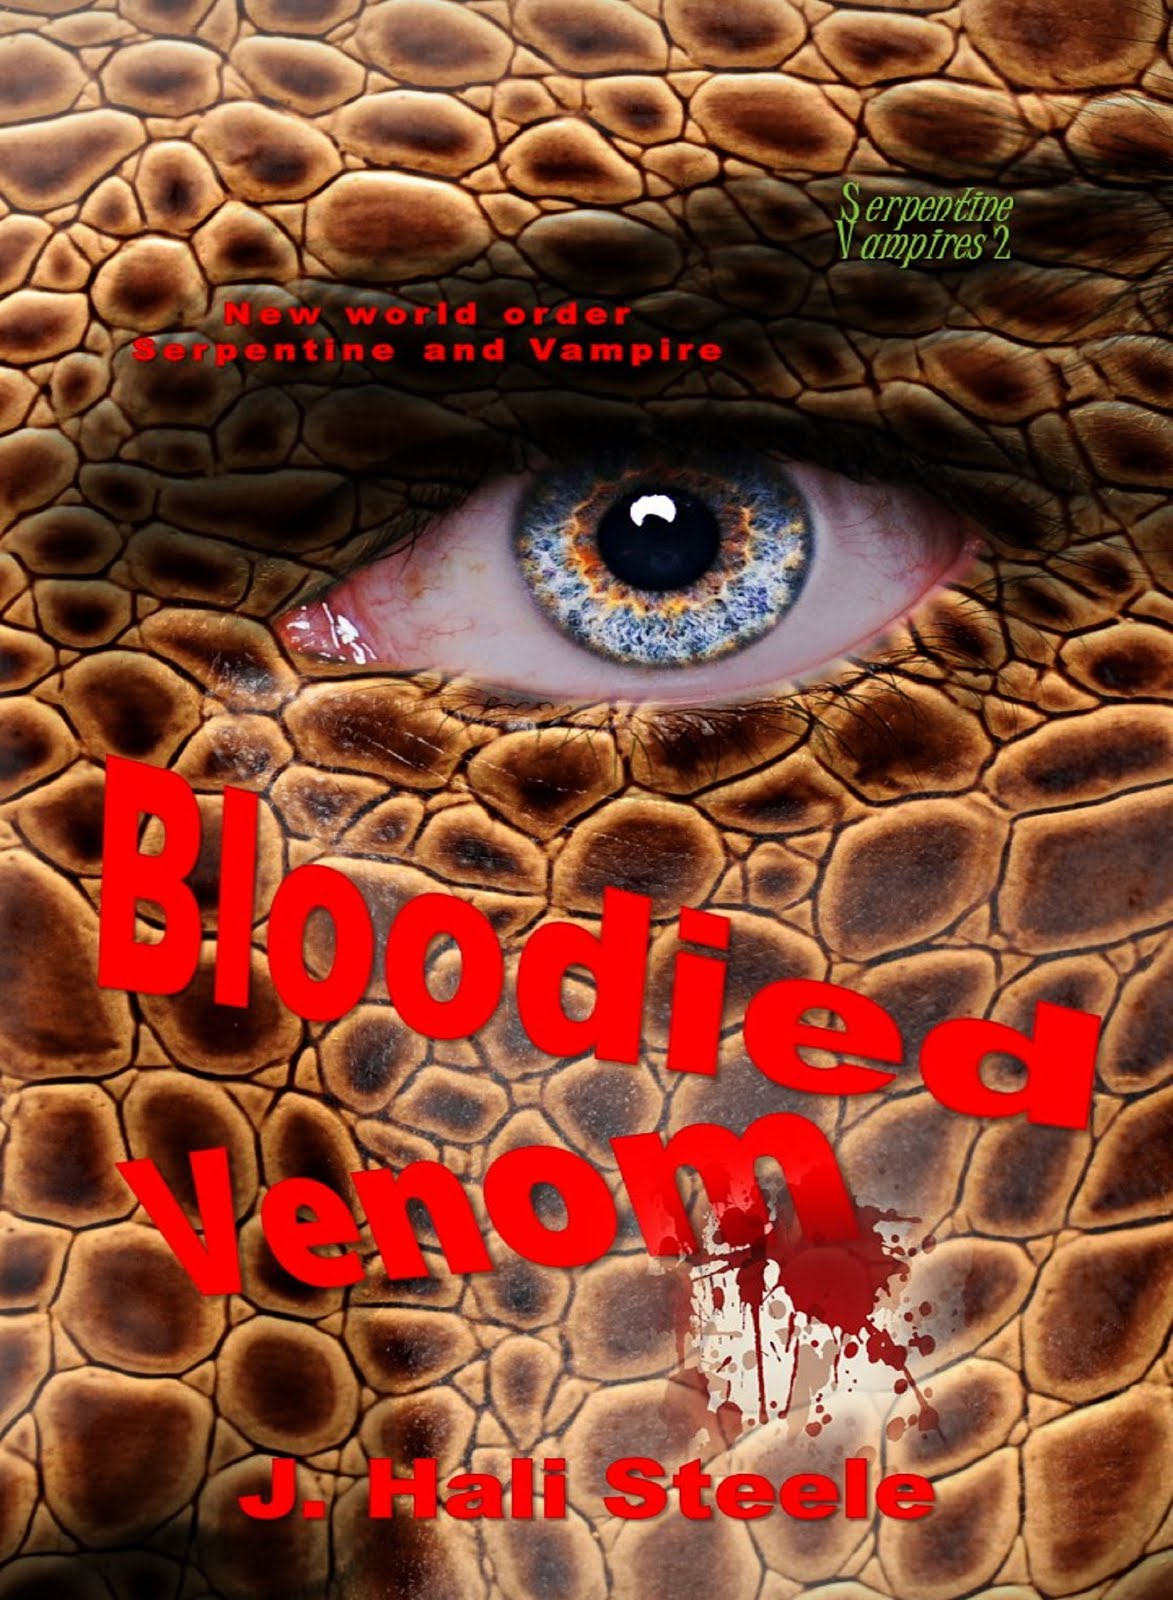 Bloodied Venom-Serpentine Vampire 2